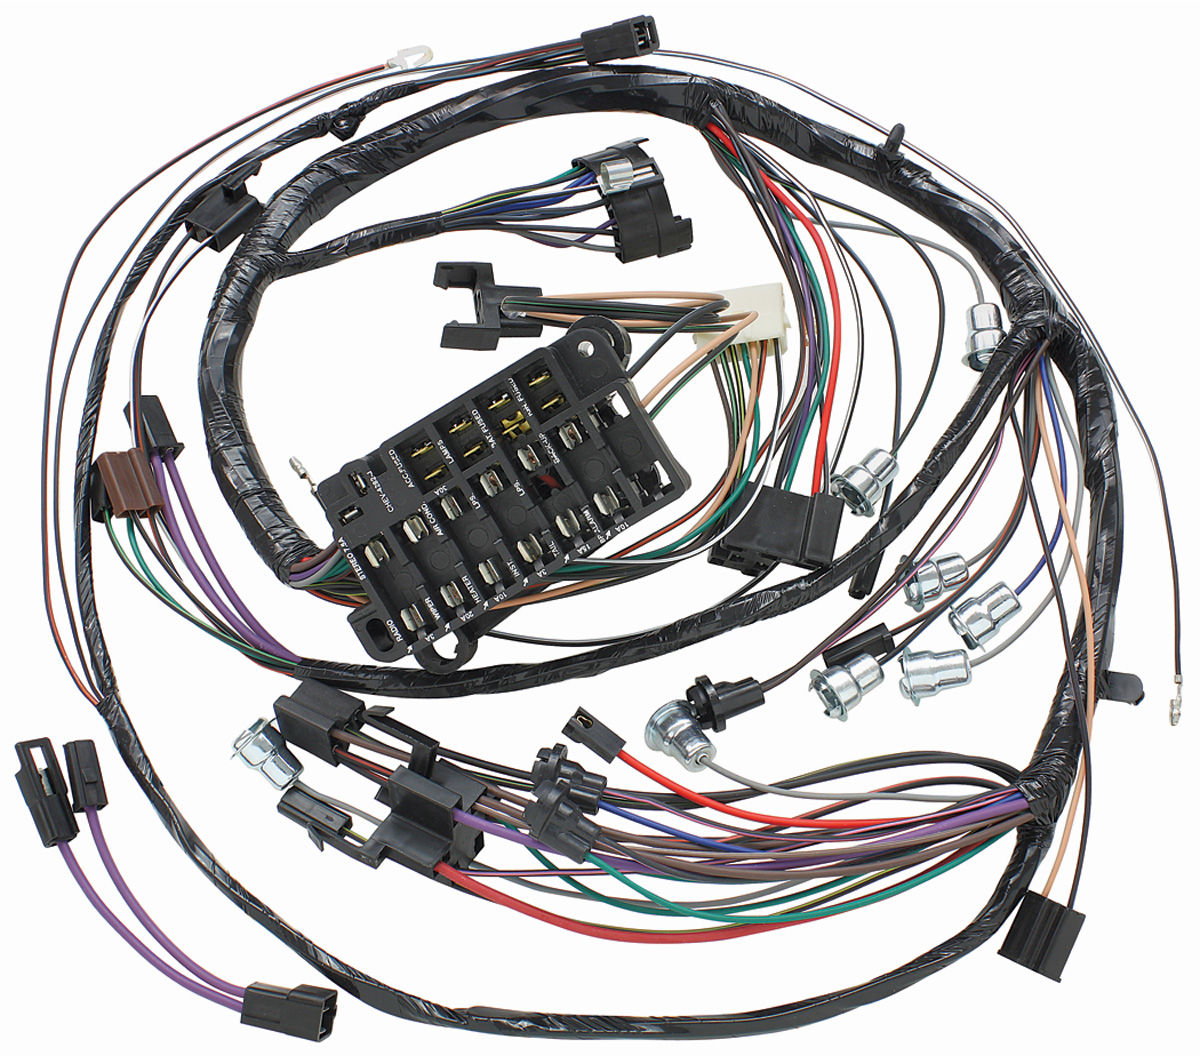 hight resolution of 67 chevelle dash fuse box wiring library dodge charger fuse box 67 chevelle dash fuse box